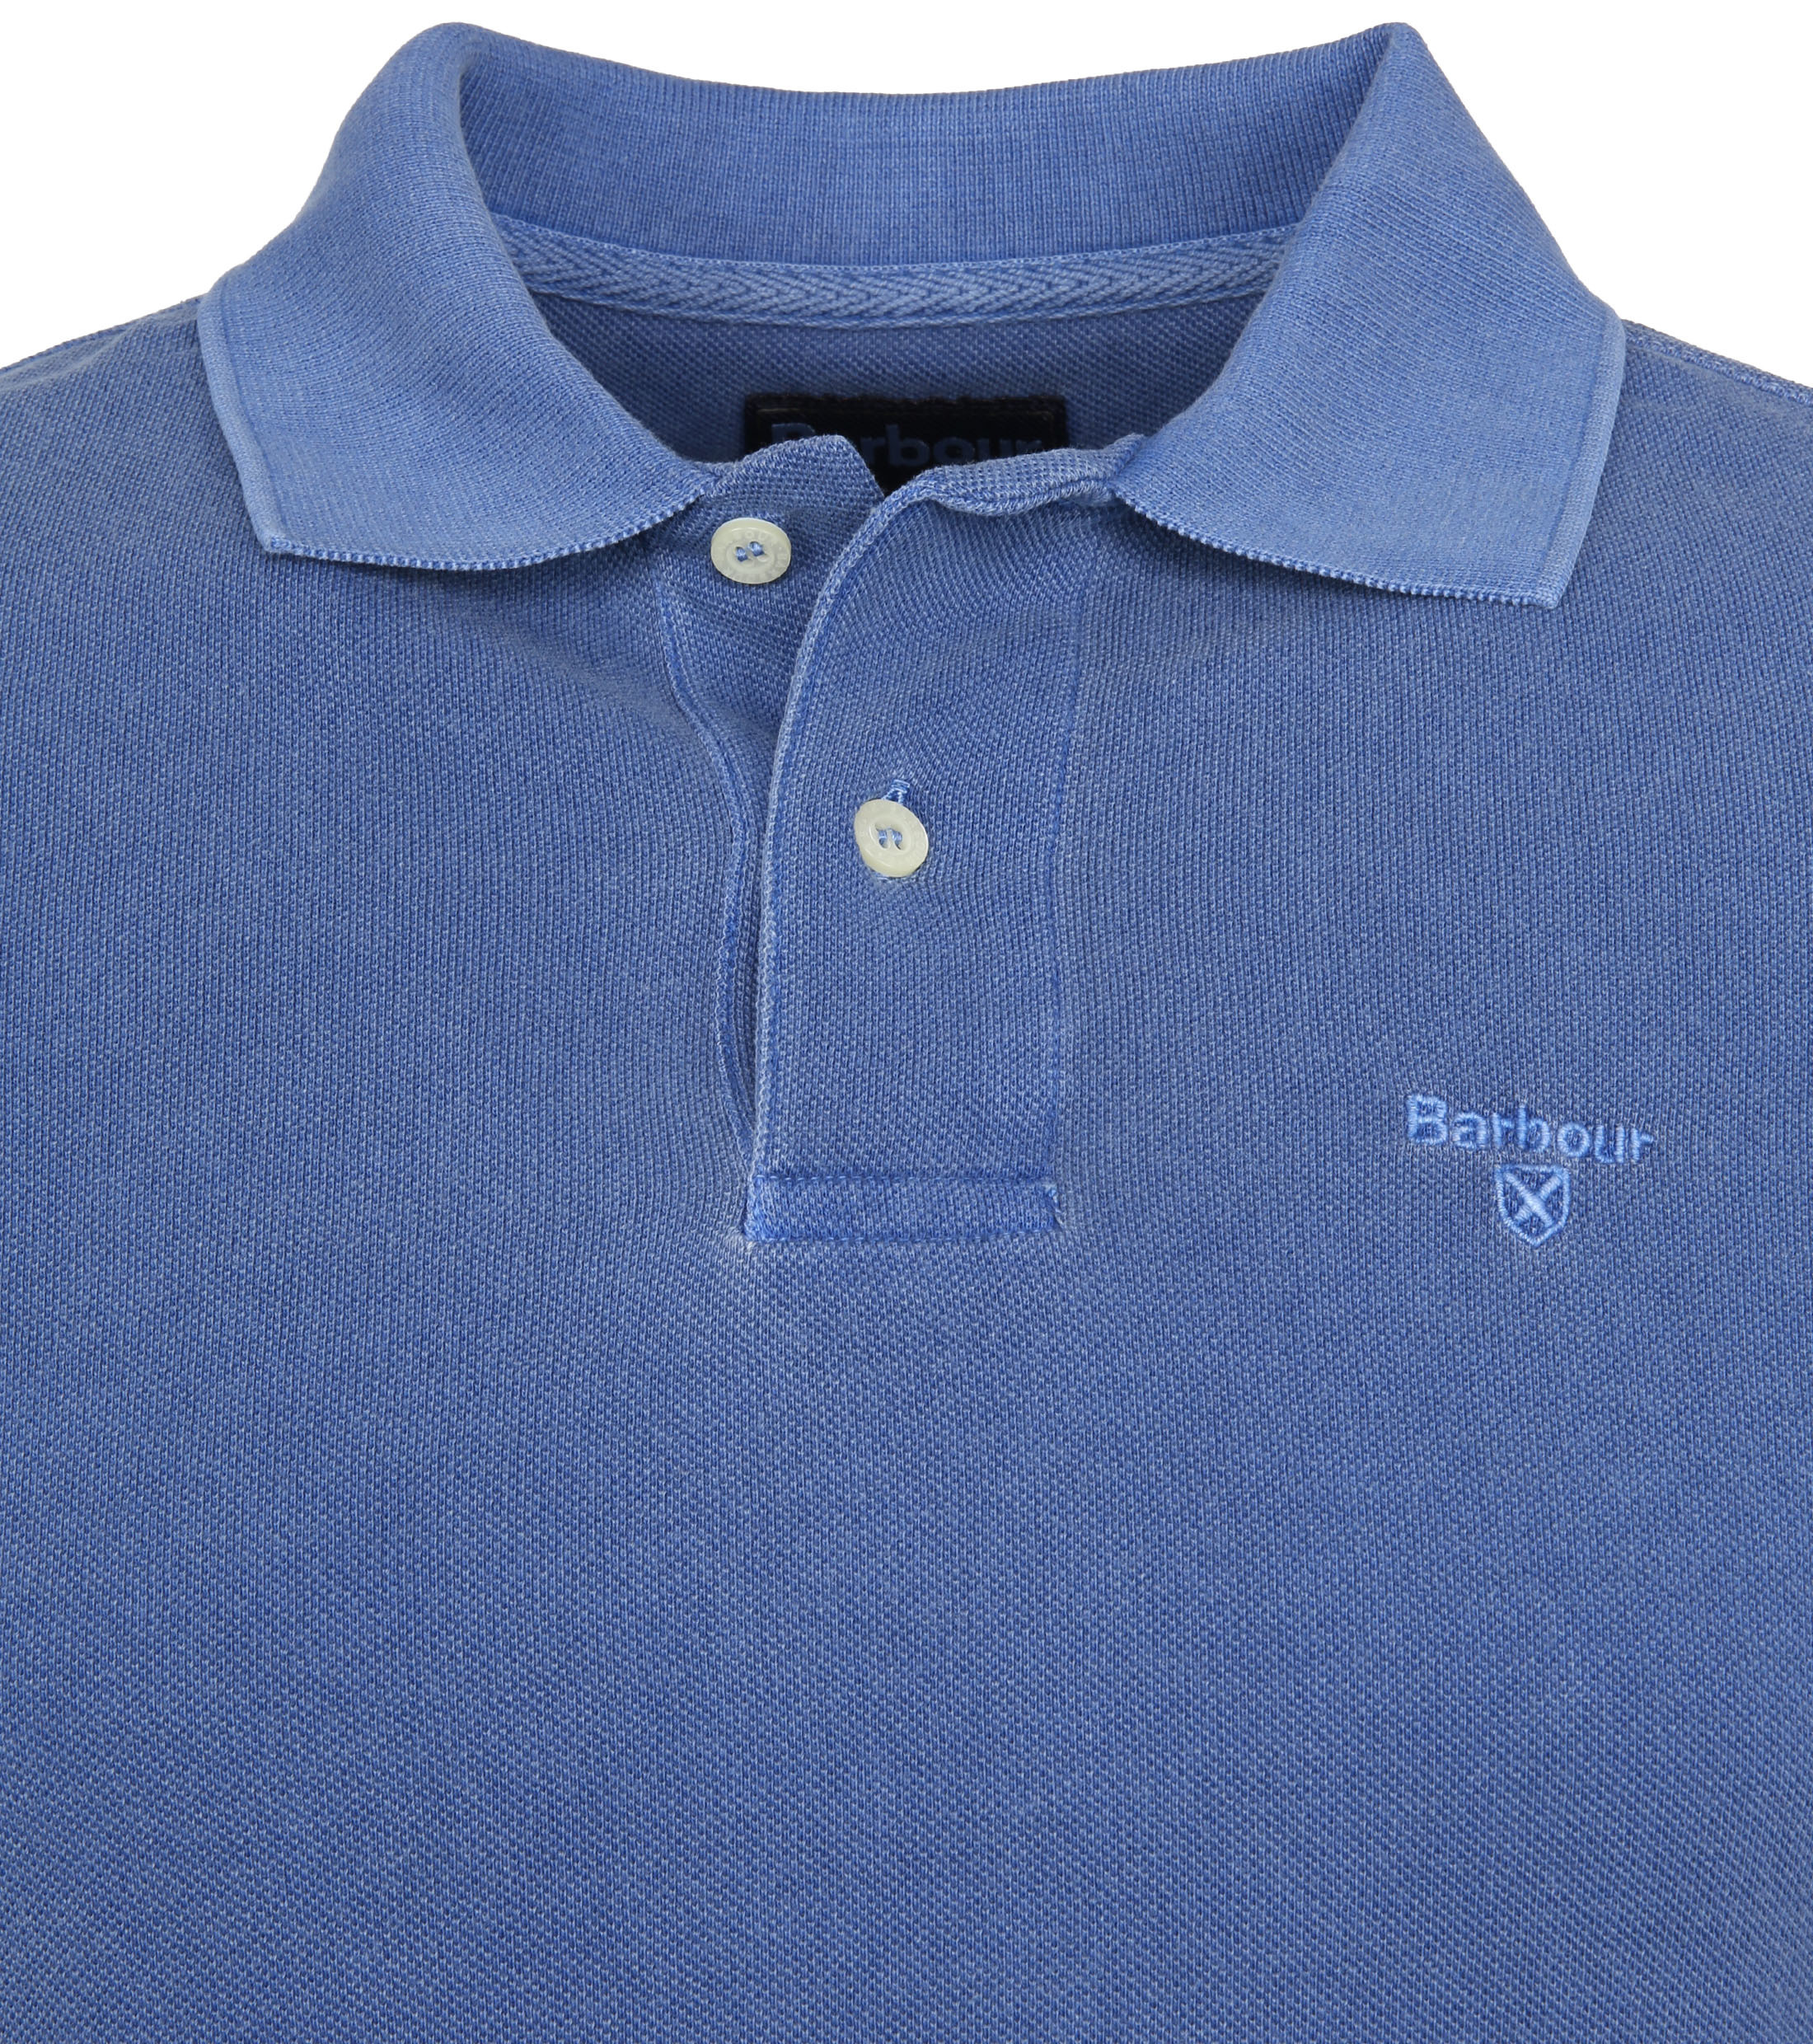 Barbour Washed Polo Blue foto 1